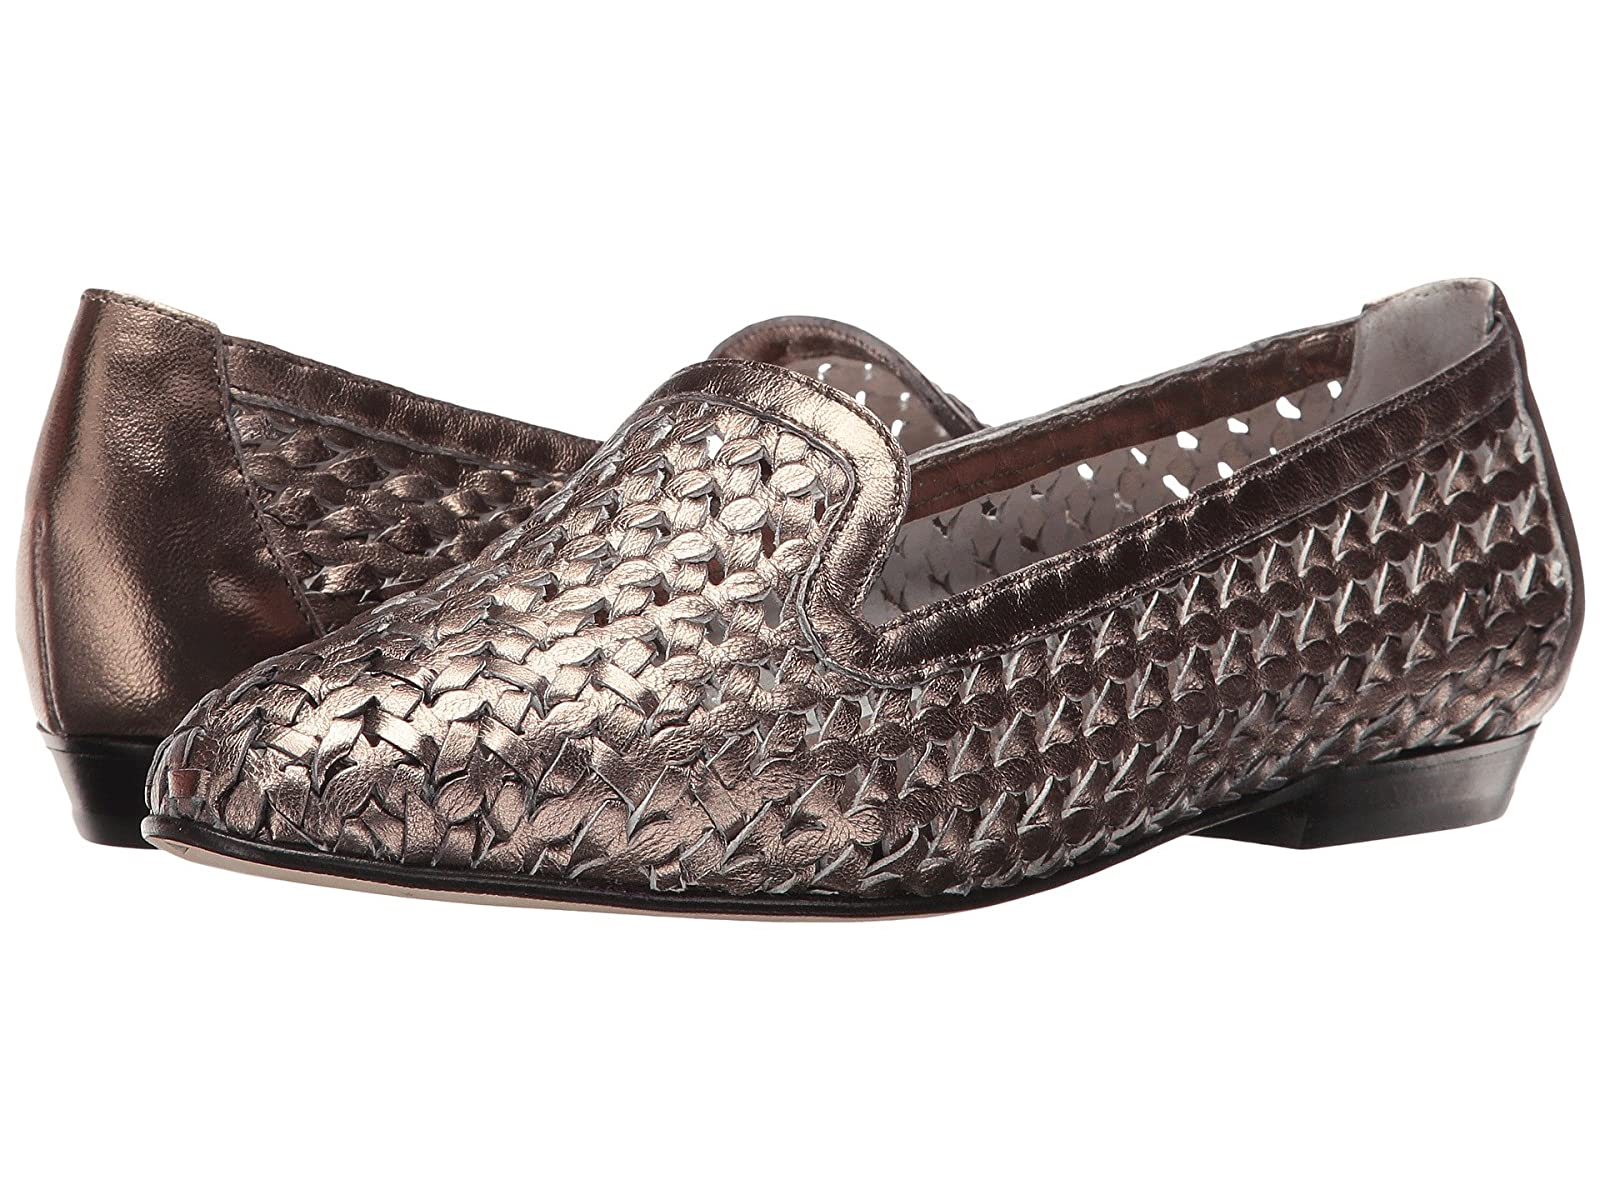 Sesto Meucci NefenCheap and distinctive eye-catching shoes